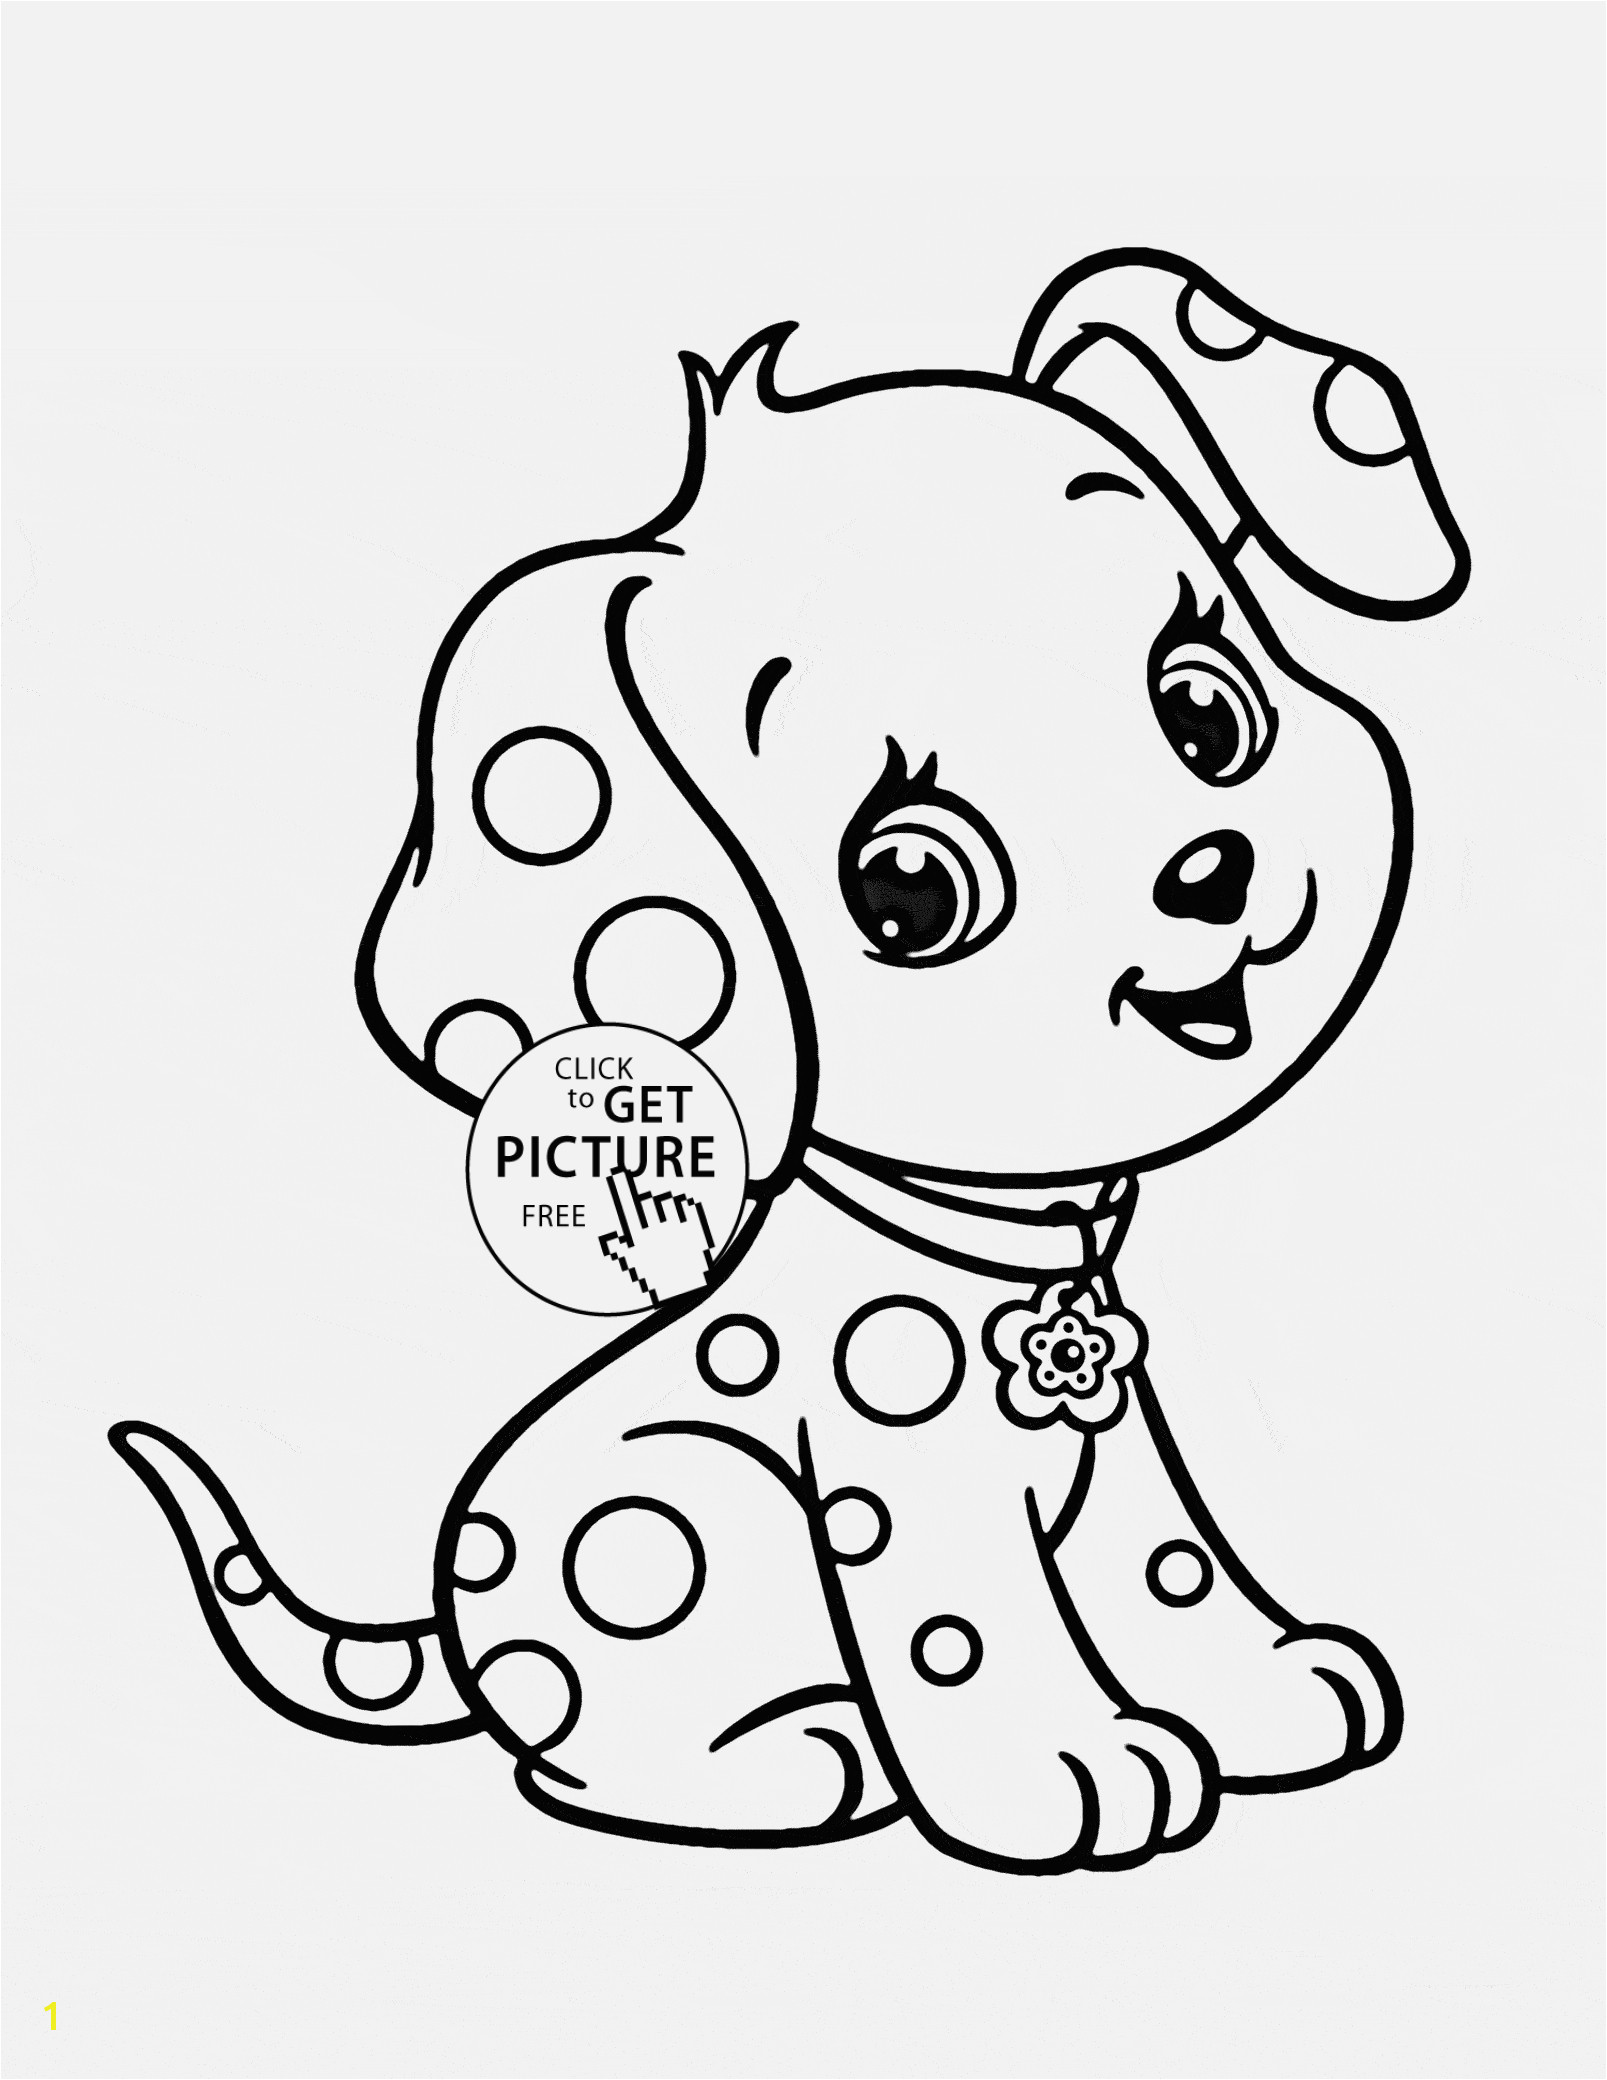 Free Animal Coloring Pages for Kids Free Animal Coloring Pages Free Print Cool Coloring Page